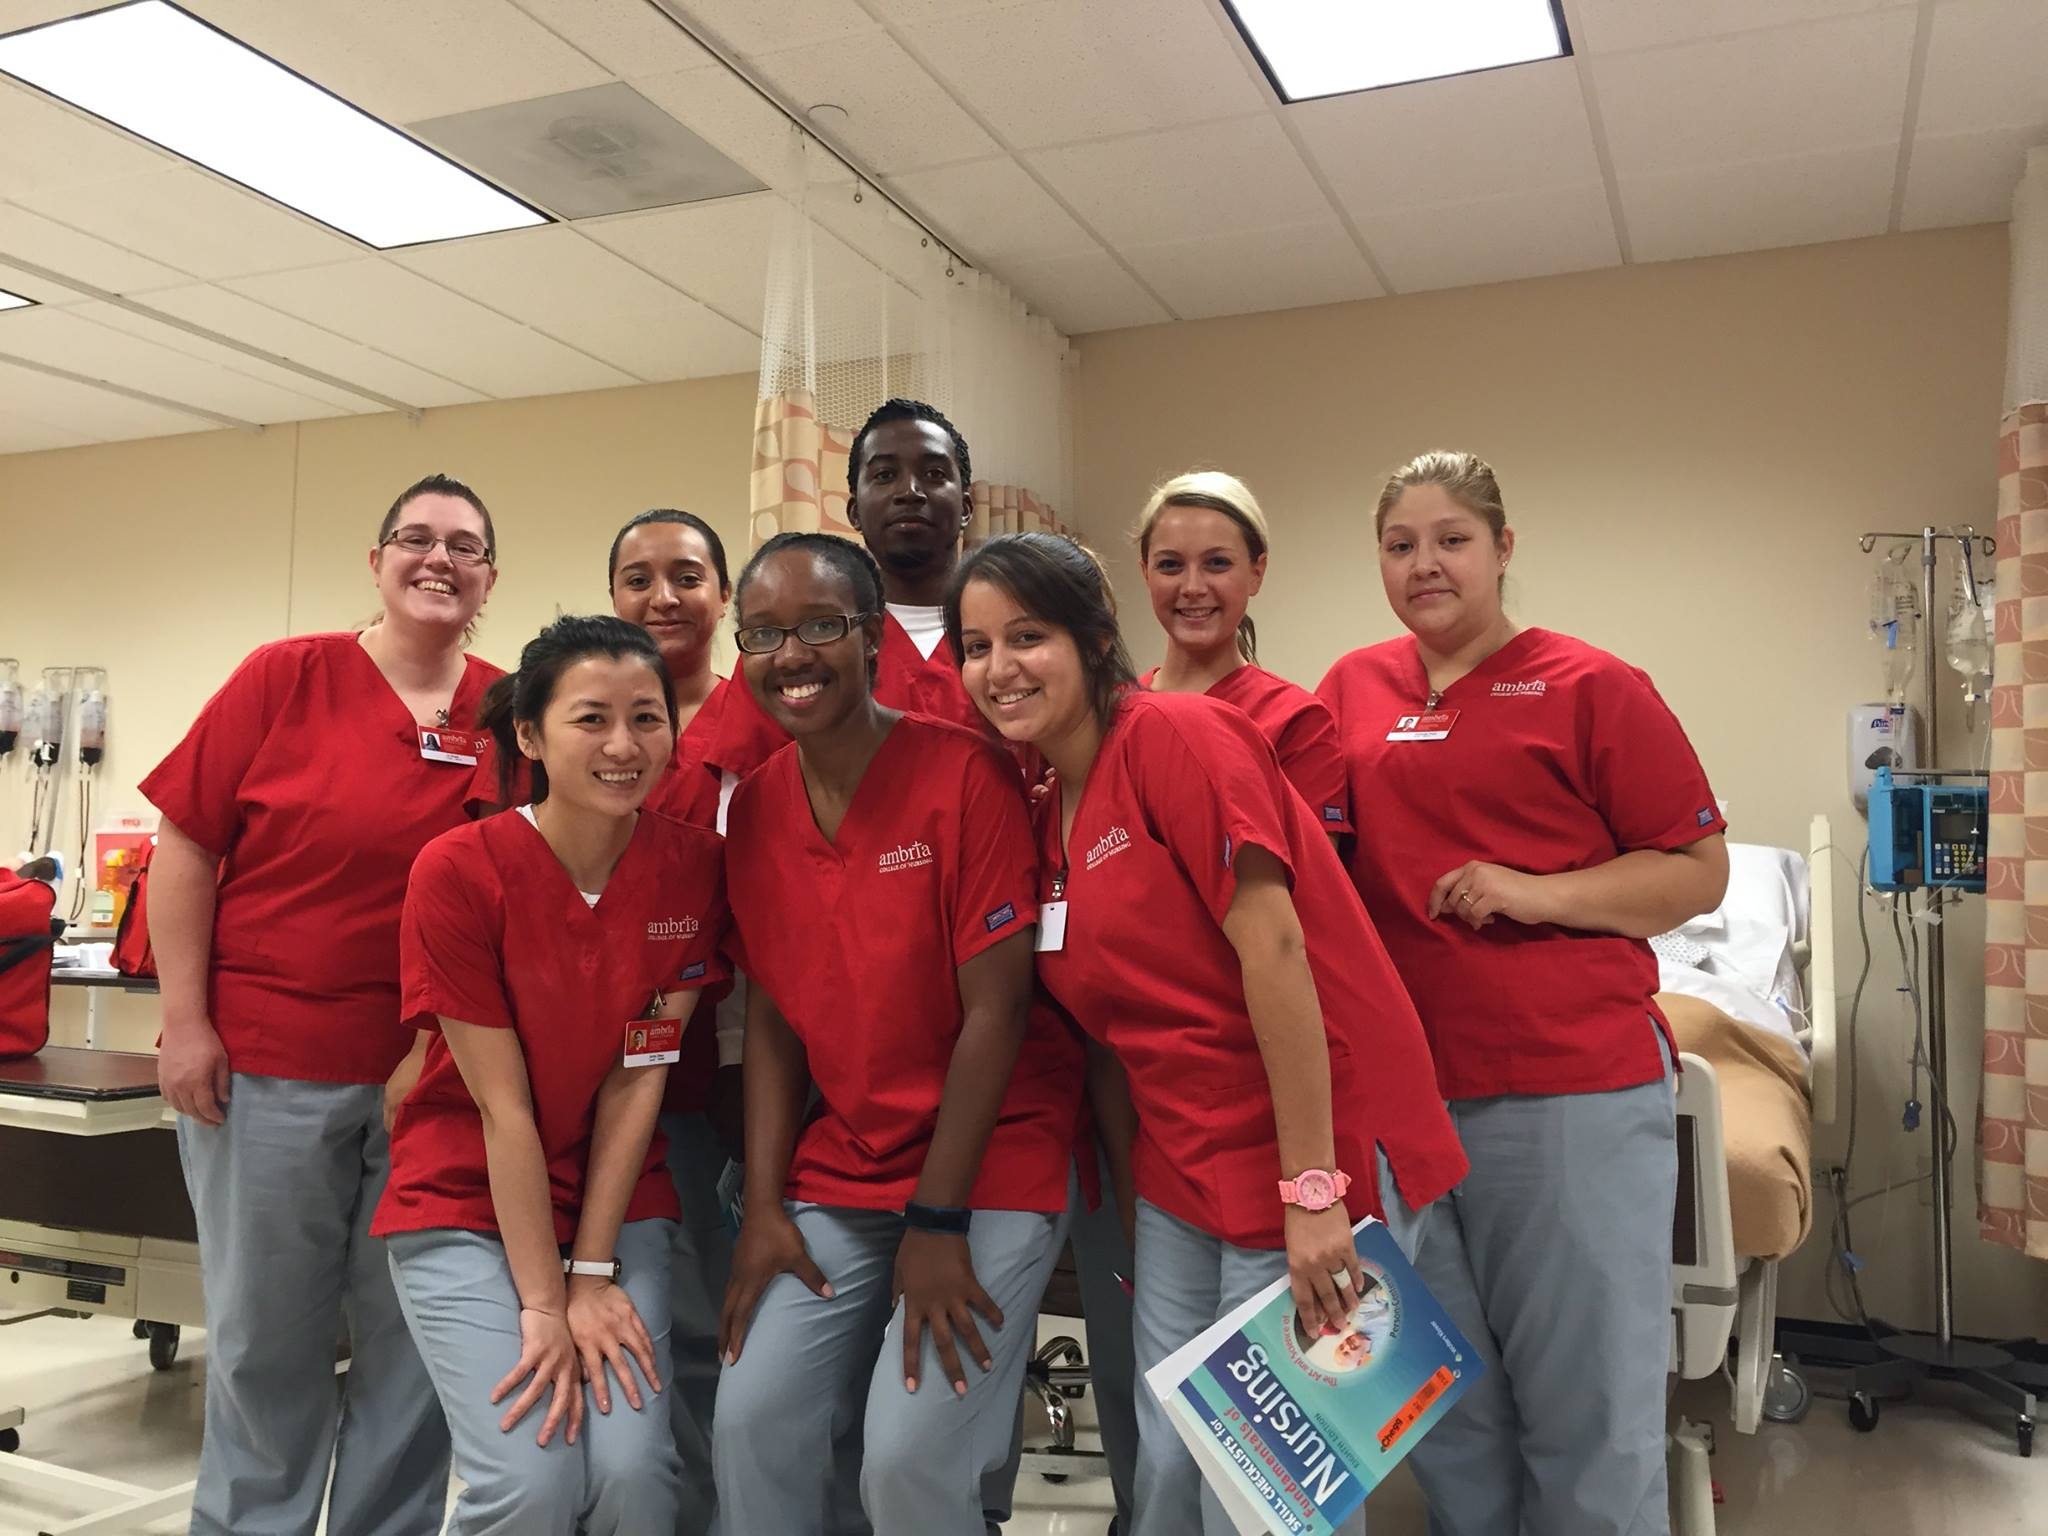 Lpn rn bsn day evening classes full part time options coursework required for lpn programs lpn program 1betcityfo Image collections